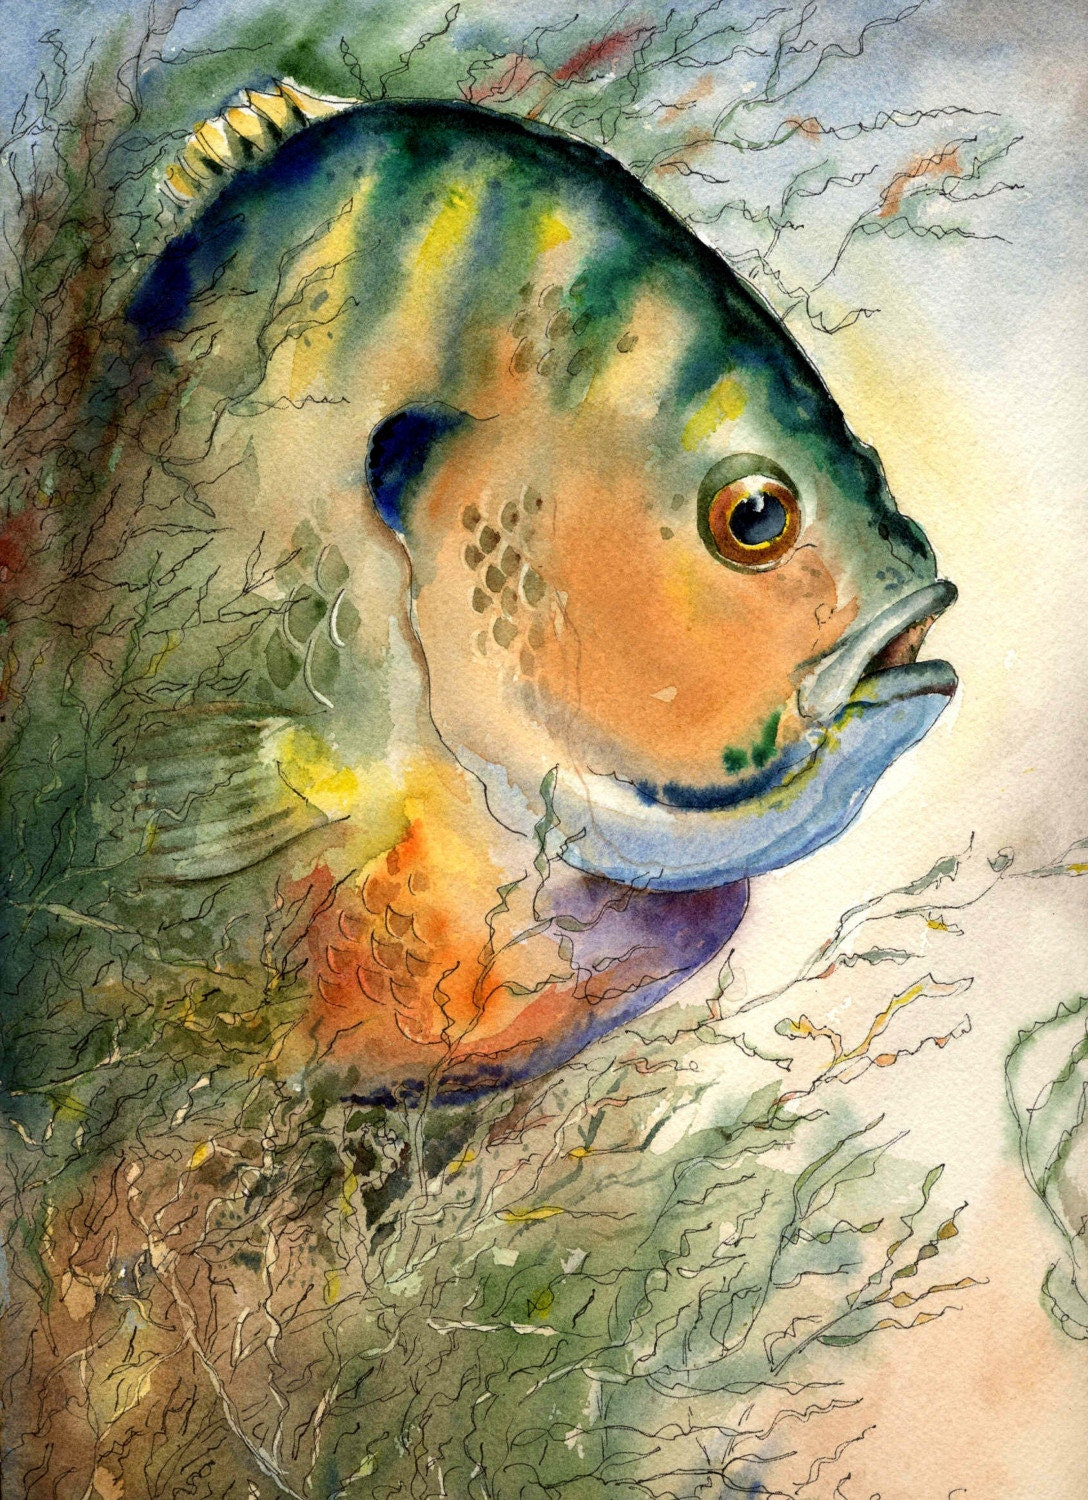 bluegill fish original watercolor 9x12 by artist barry singer